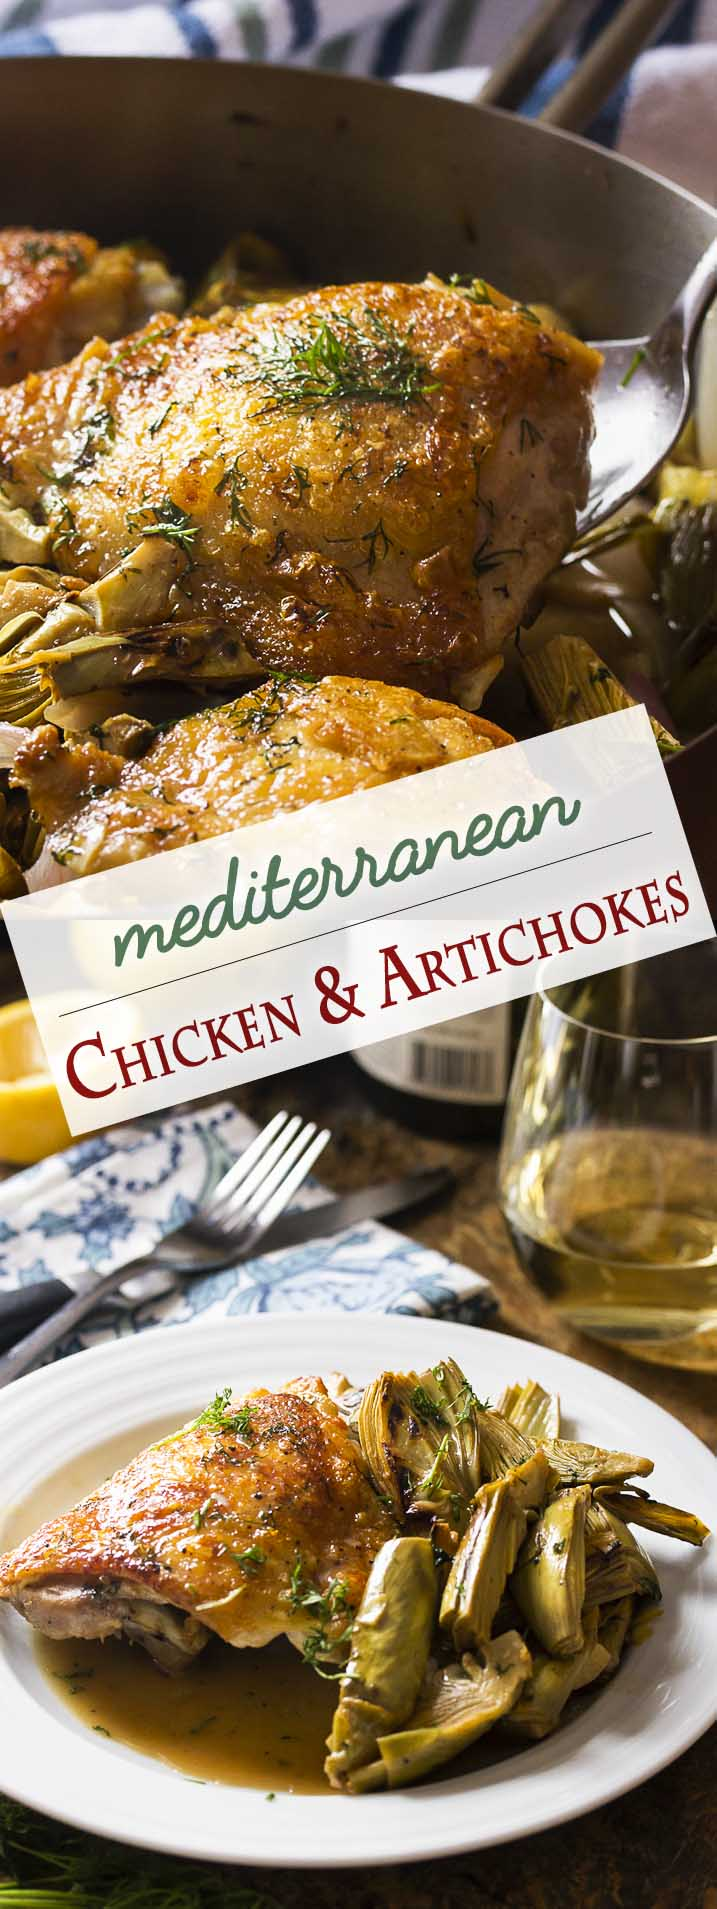 Looking for a new chicken recipe? Love artichokes? My pan roasted chicken and artichokes with a white wine lemon pan sauce is a great skillet dinner full of Mediterranean flavors and a great way to use fresh, baby artichokes. | justalittlebitofbacon.com #chicken #artichokes #skilletchicken #mediterranean